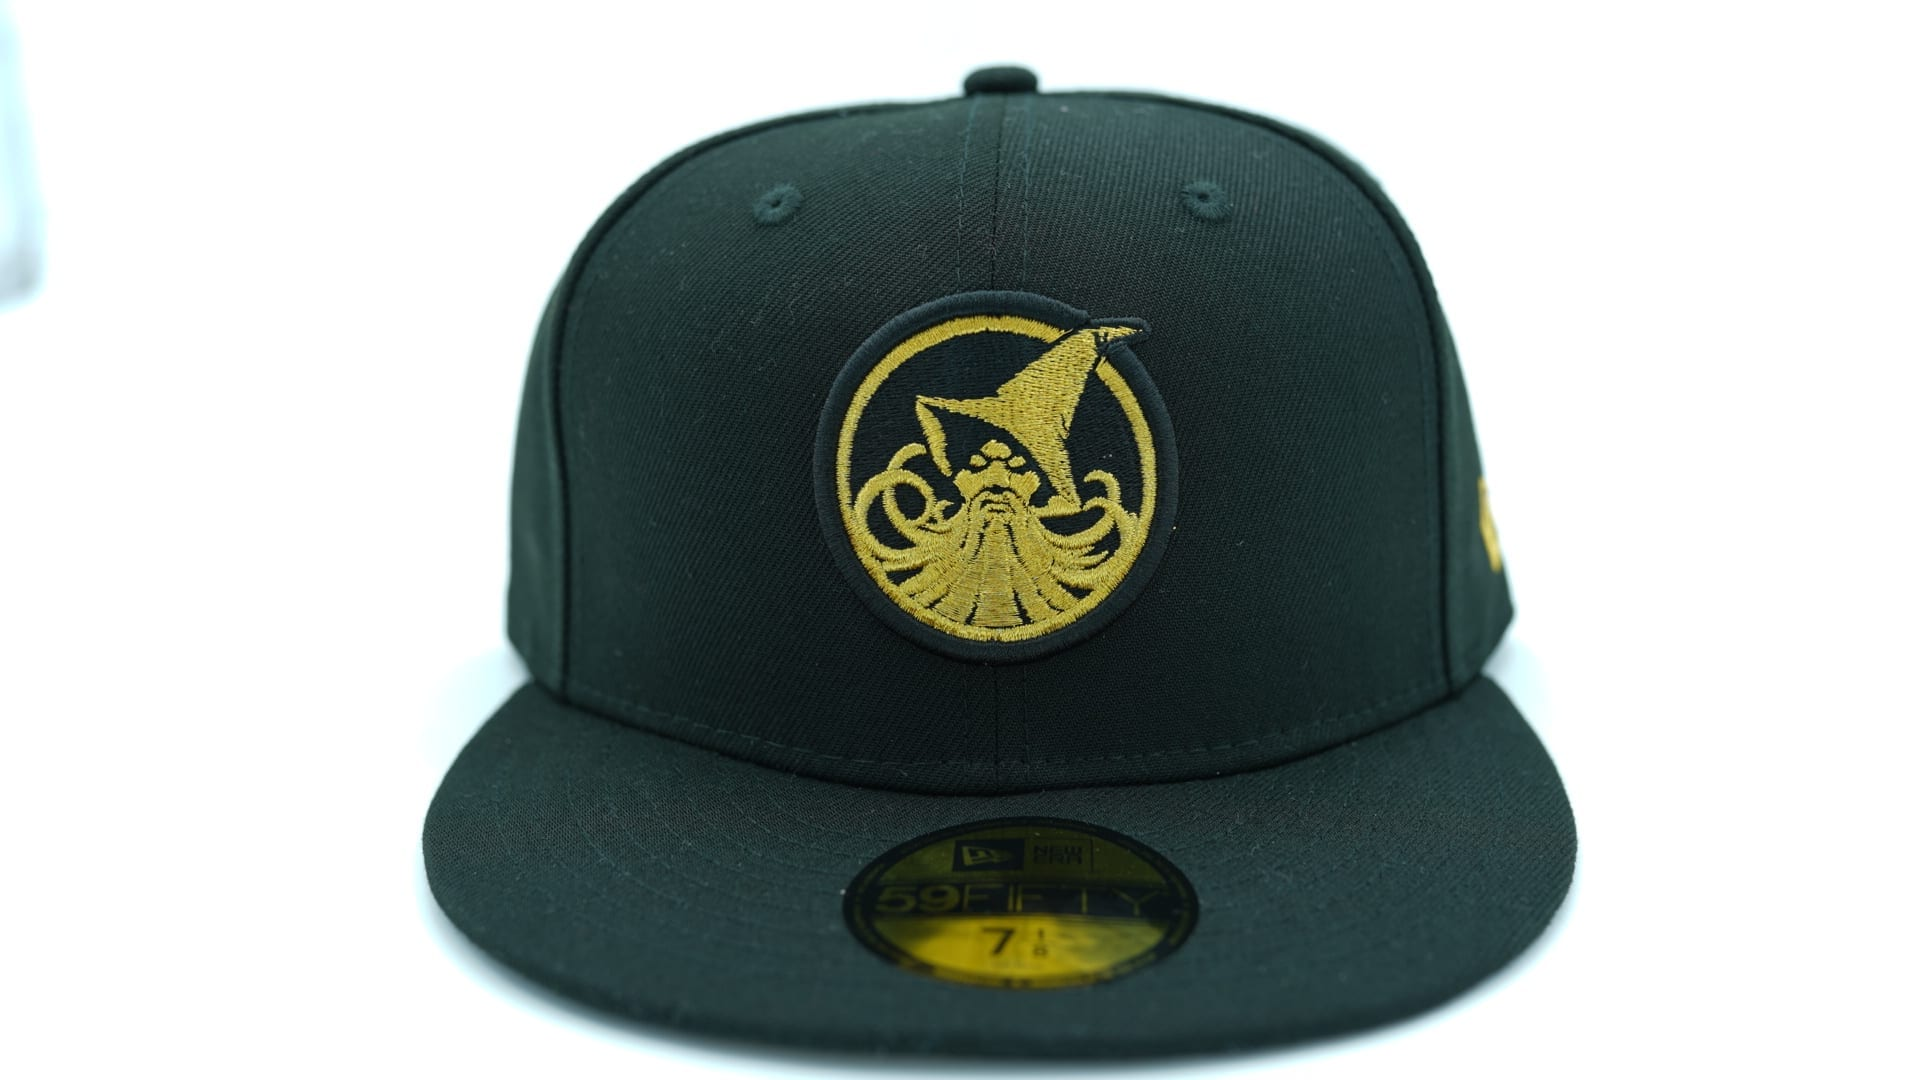 064d2638733 2014 MLB All Star Cap Collection by NEW ERA x MLB